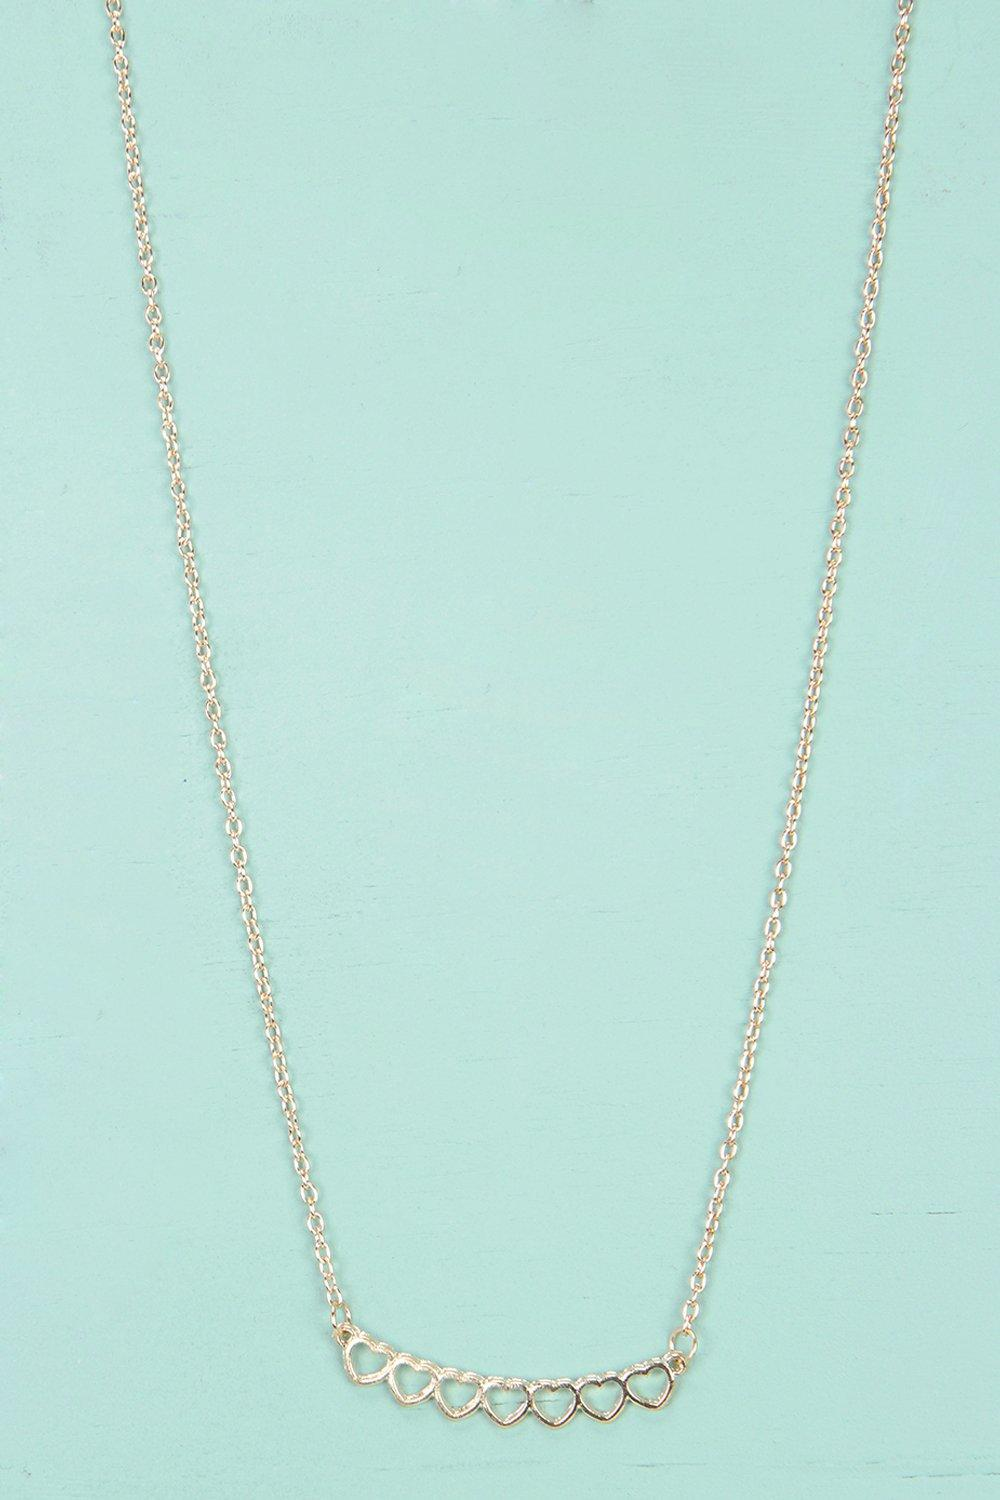 Charlotte Heart Chain Necklace